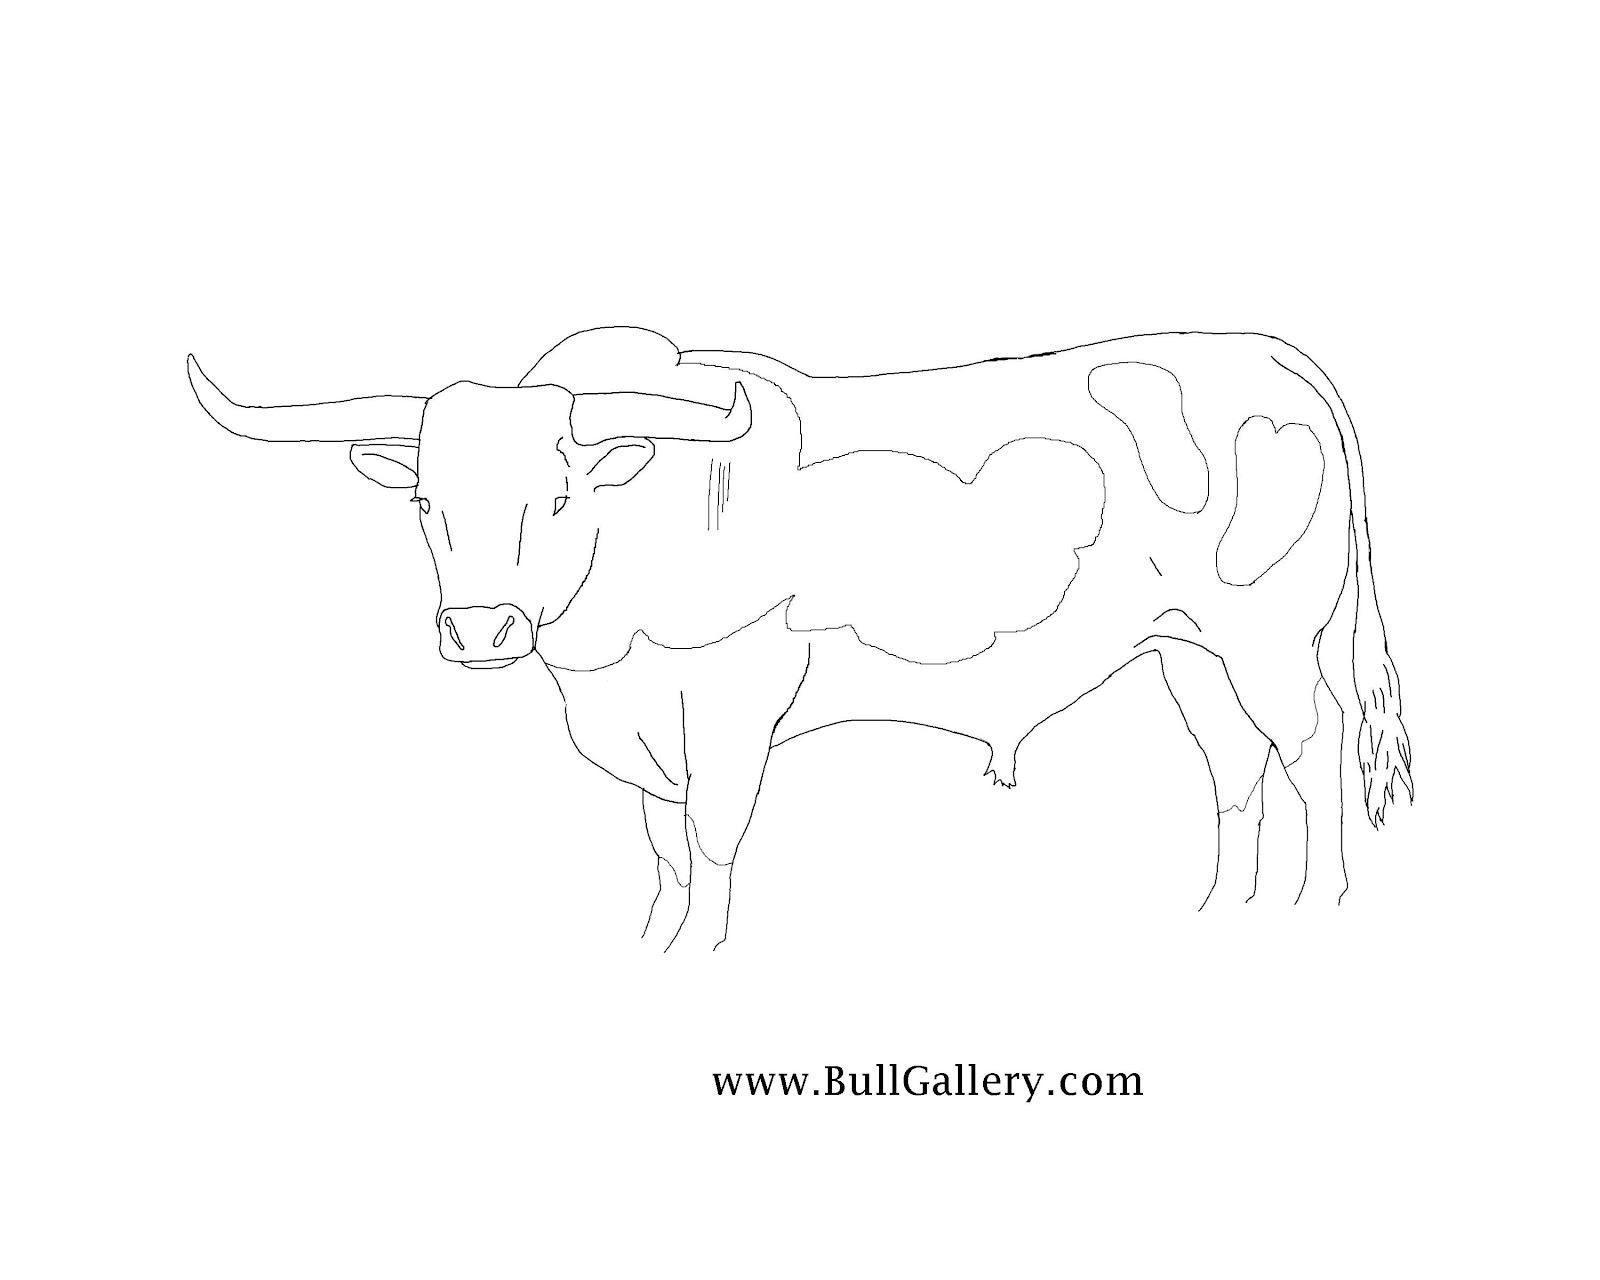 Bull Pictures To Color Free - Bull Gallery